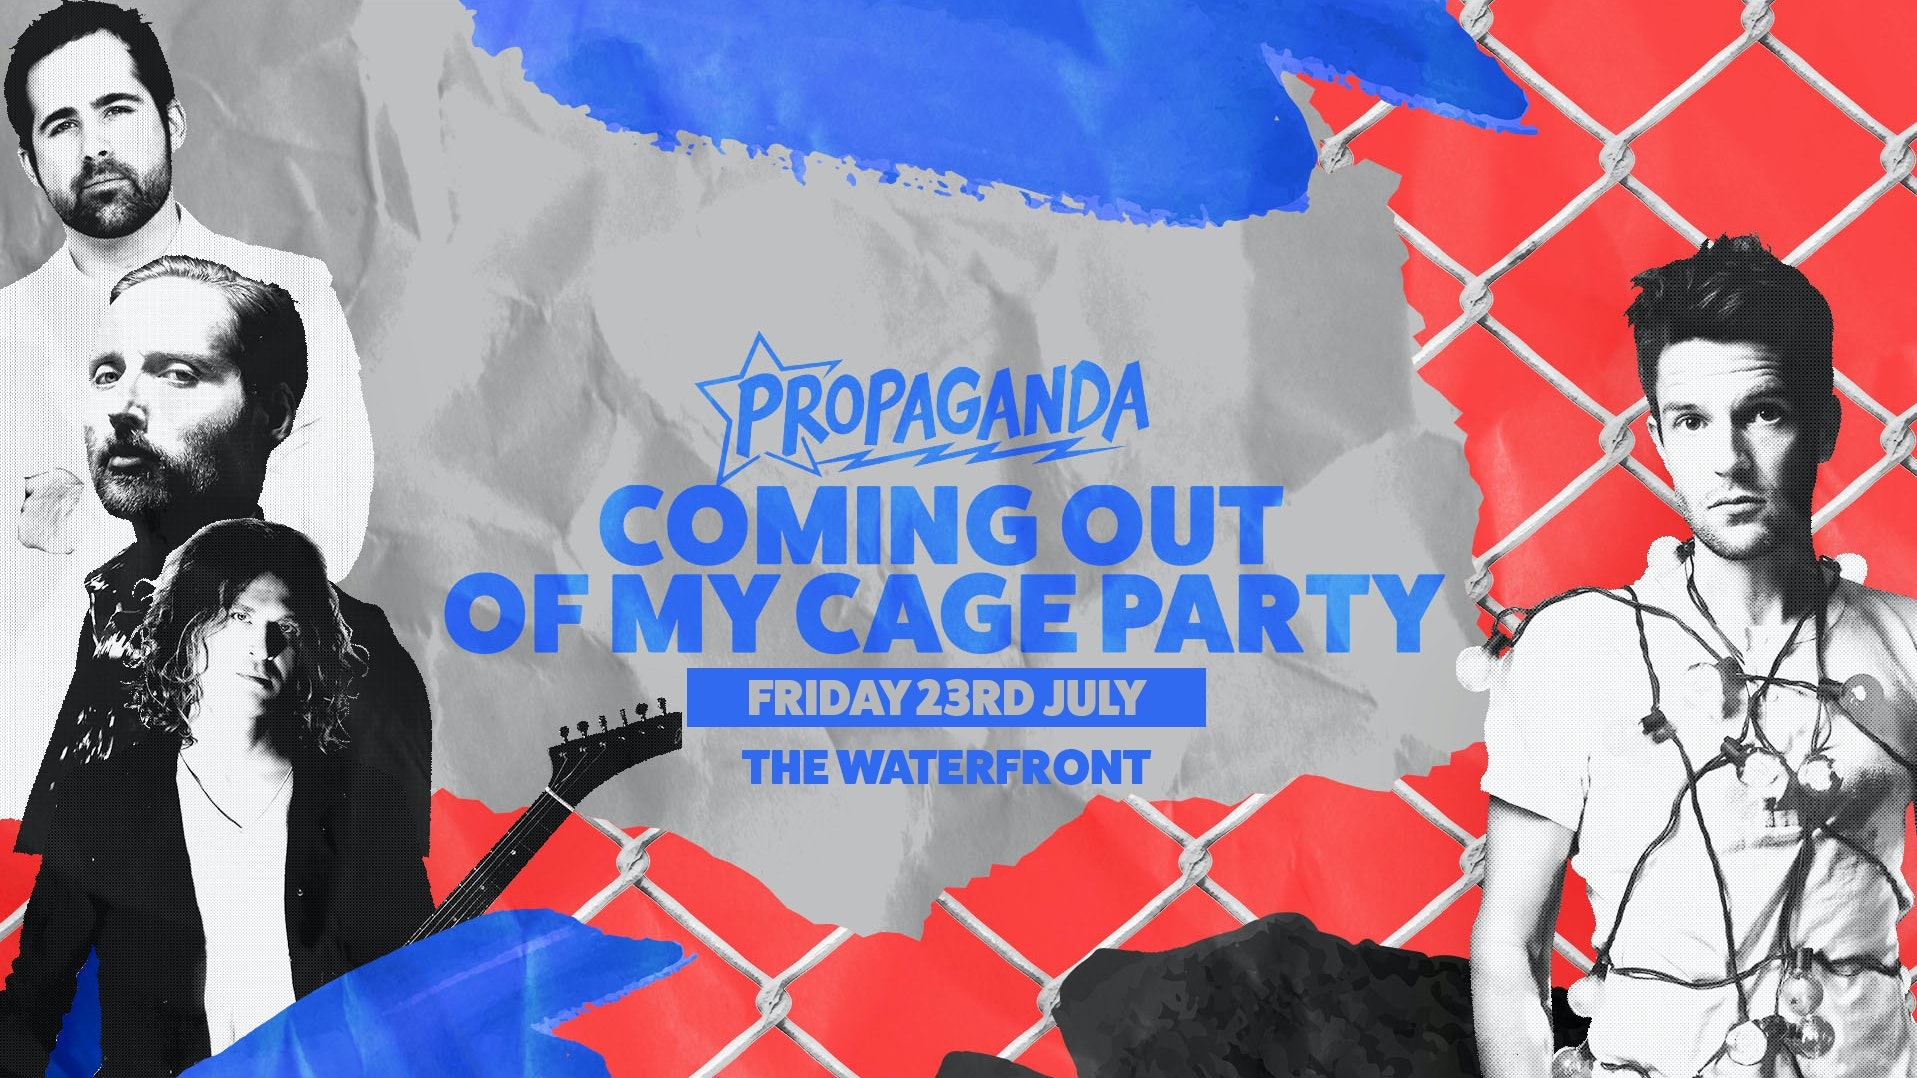 Propaganda Norwich – Coming Out Of My Cage Party!